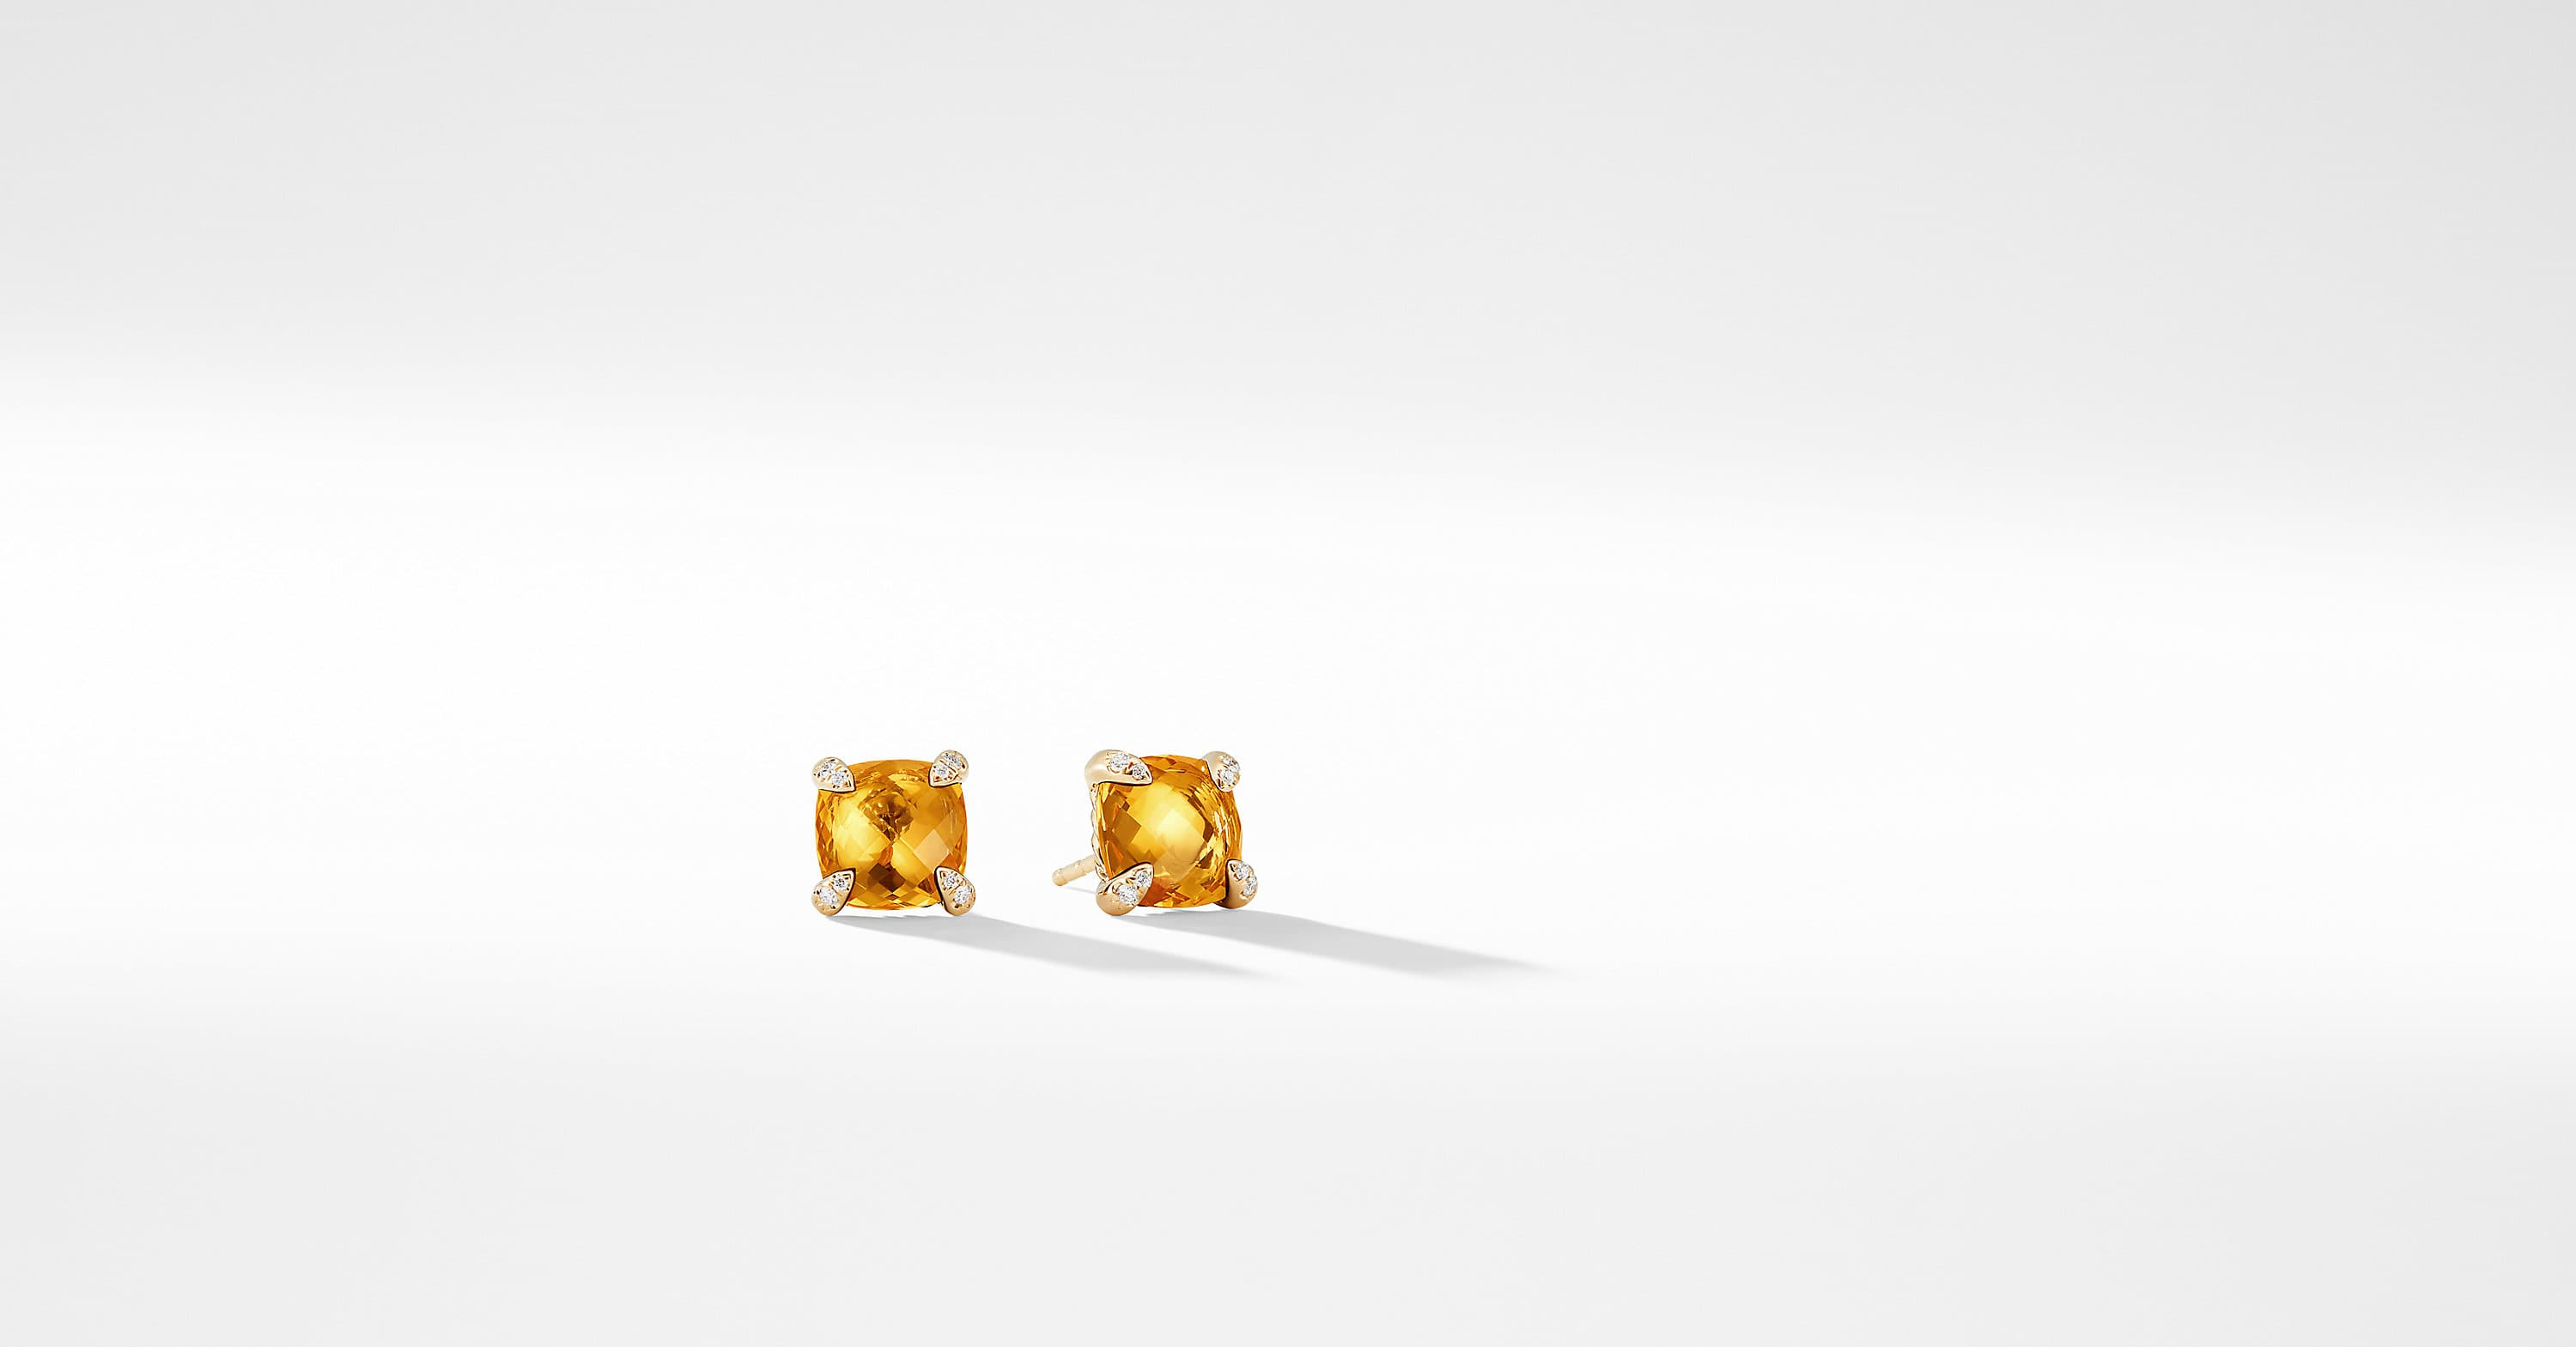 Chatelaine Earrings with Diamonds in 18K Gold, 8mm